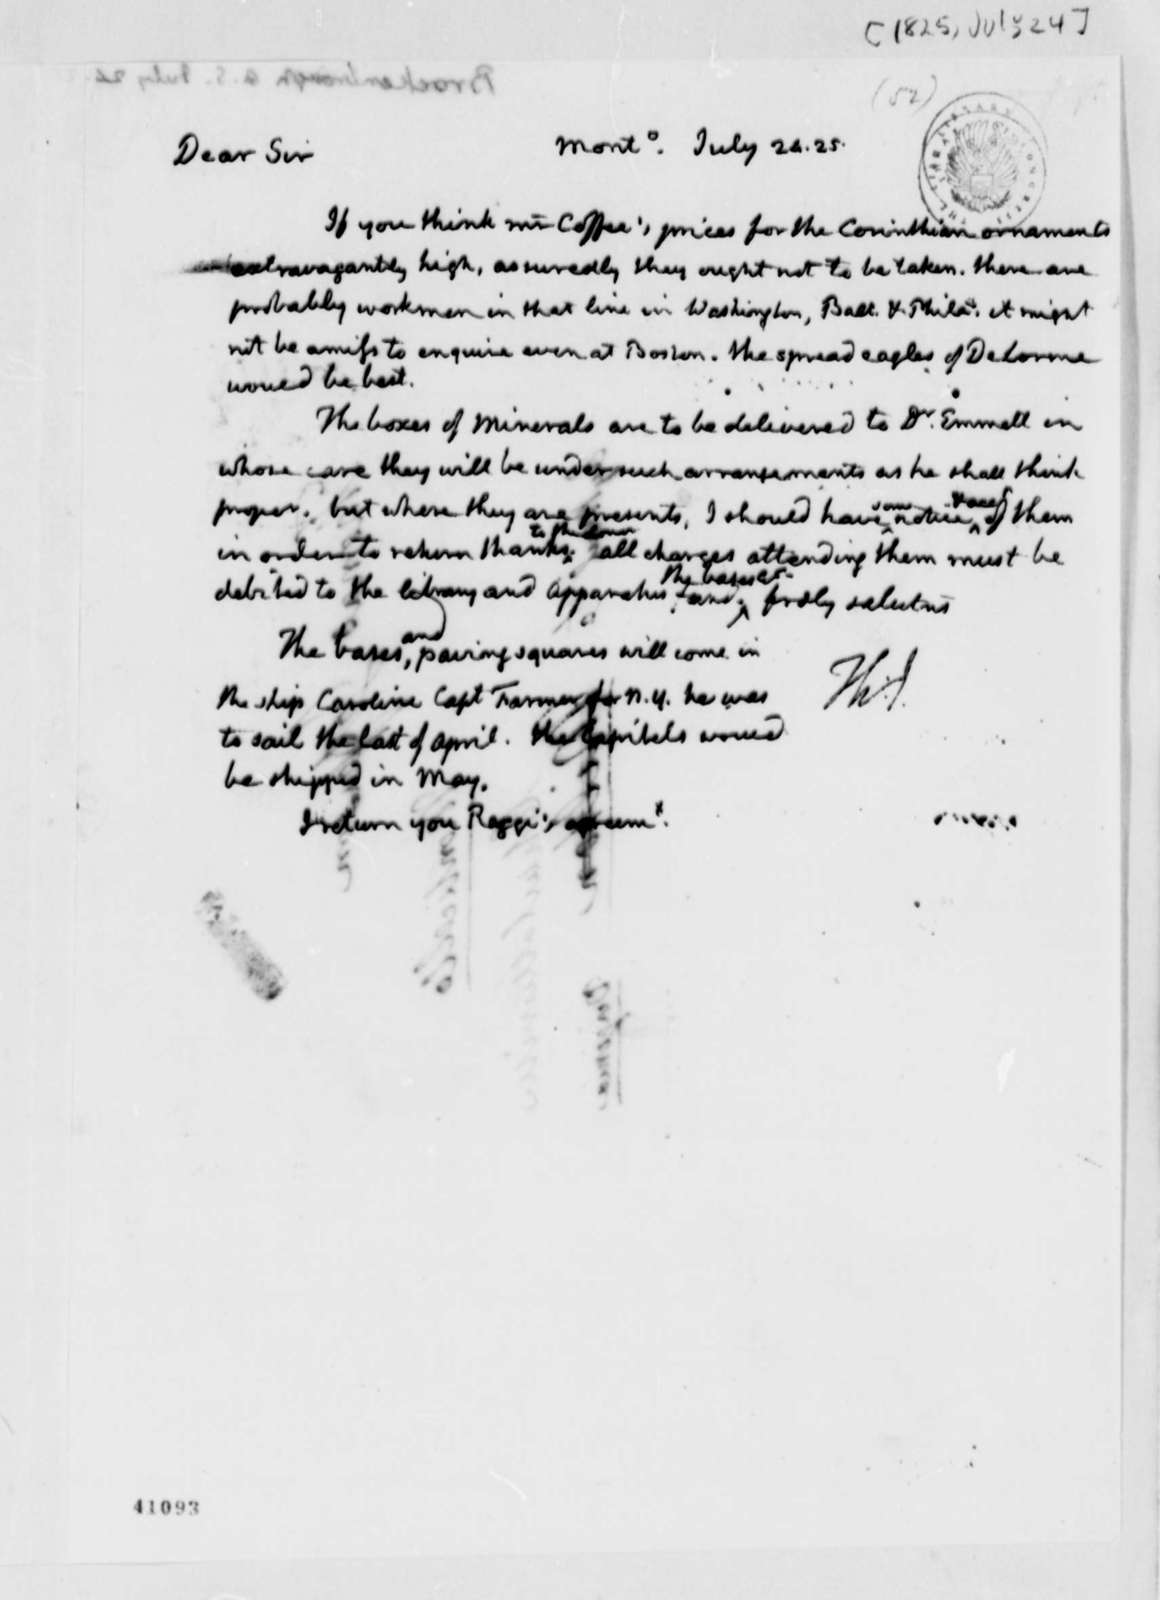 Thomas Jefferson to Arthur S. Brockenbrough, July 24, 1825